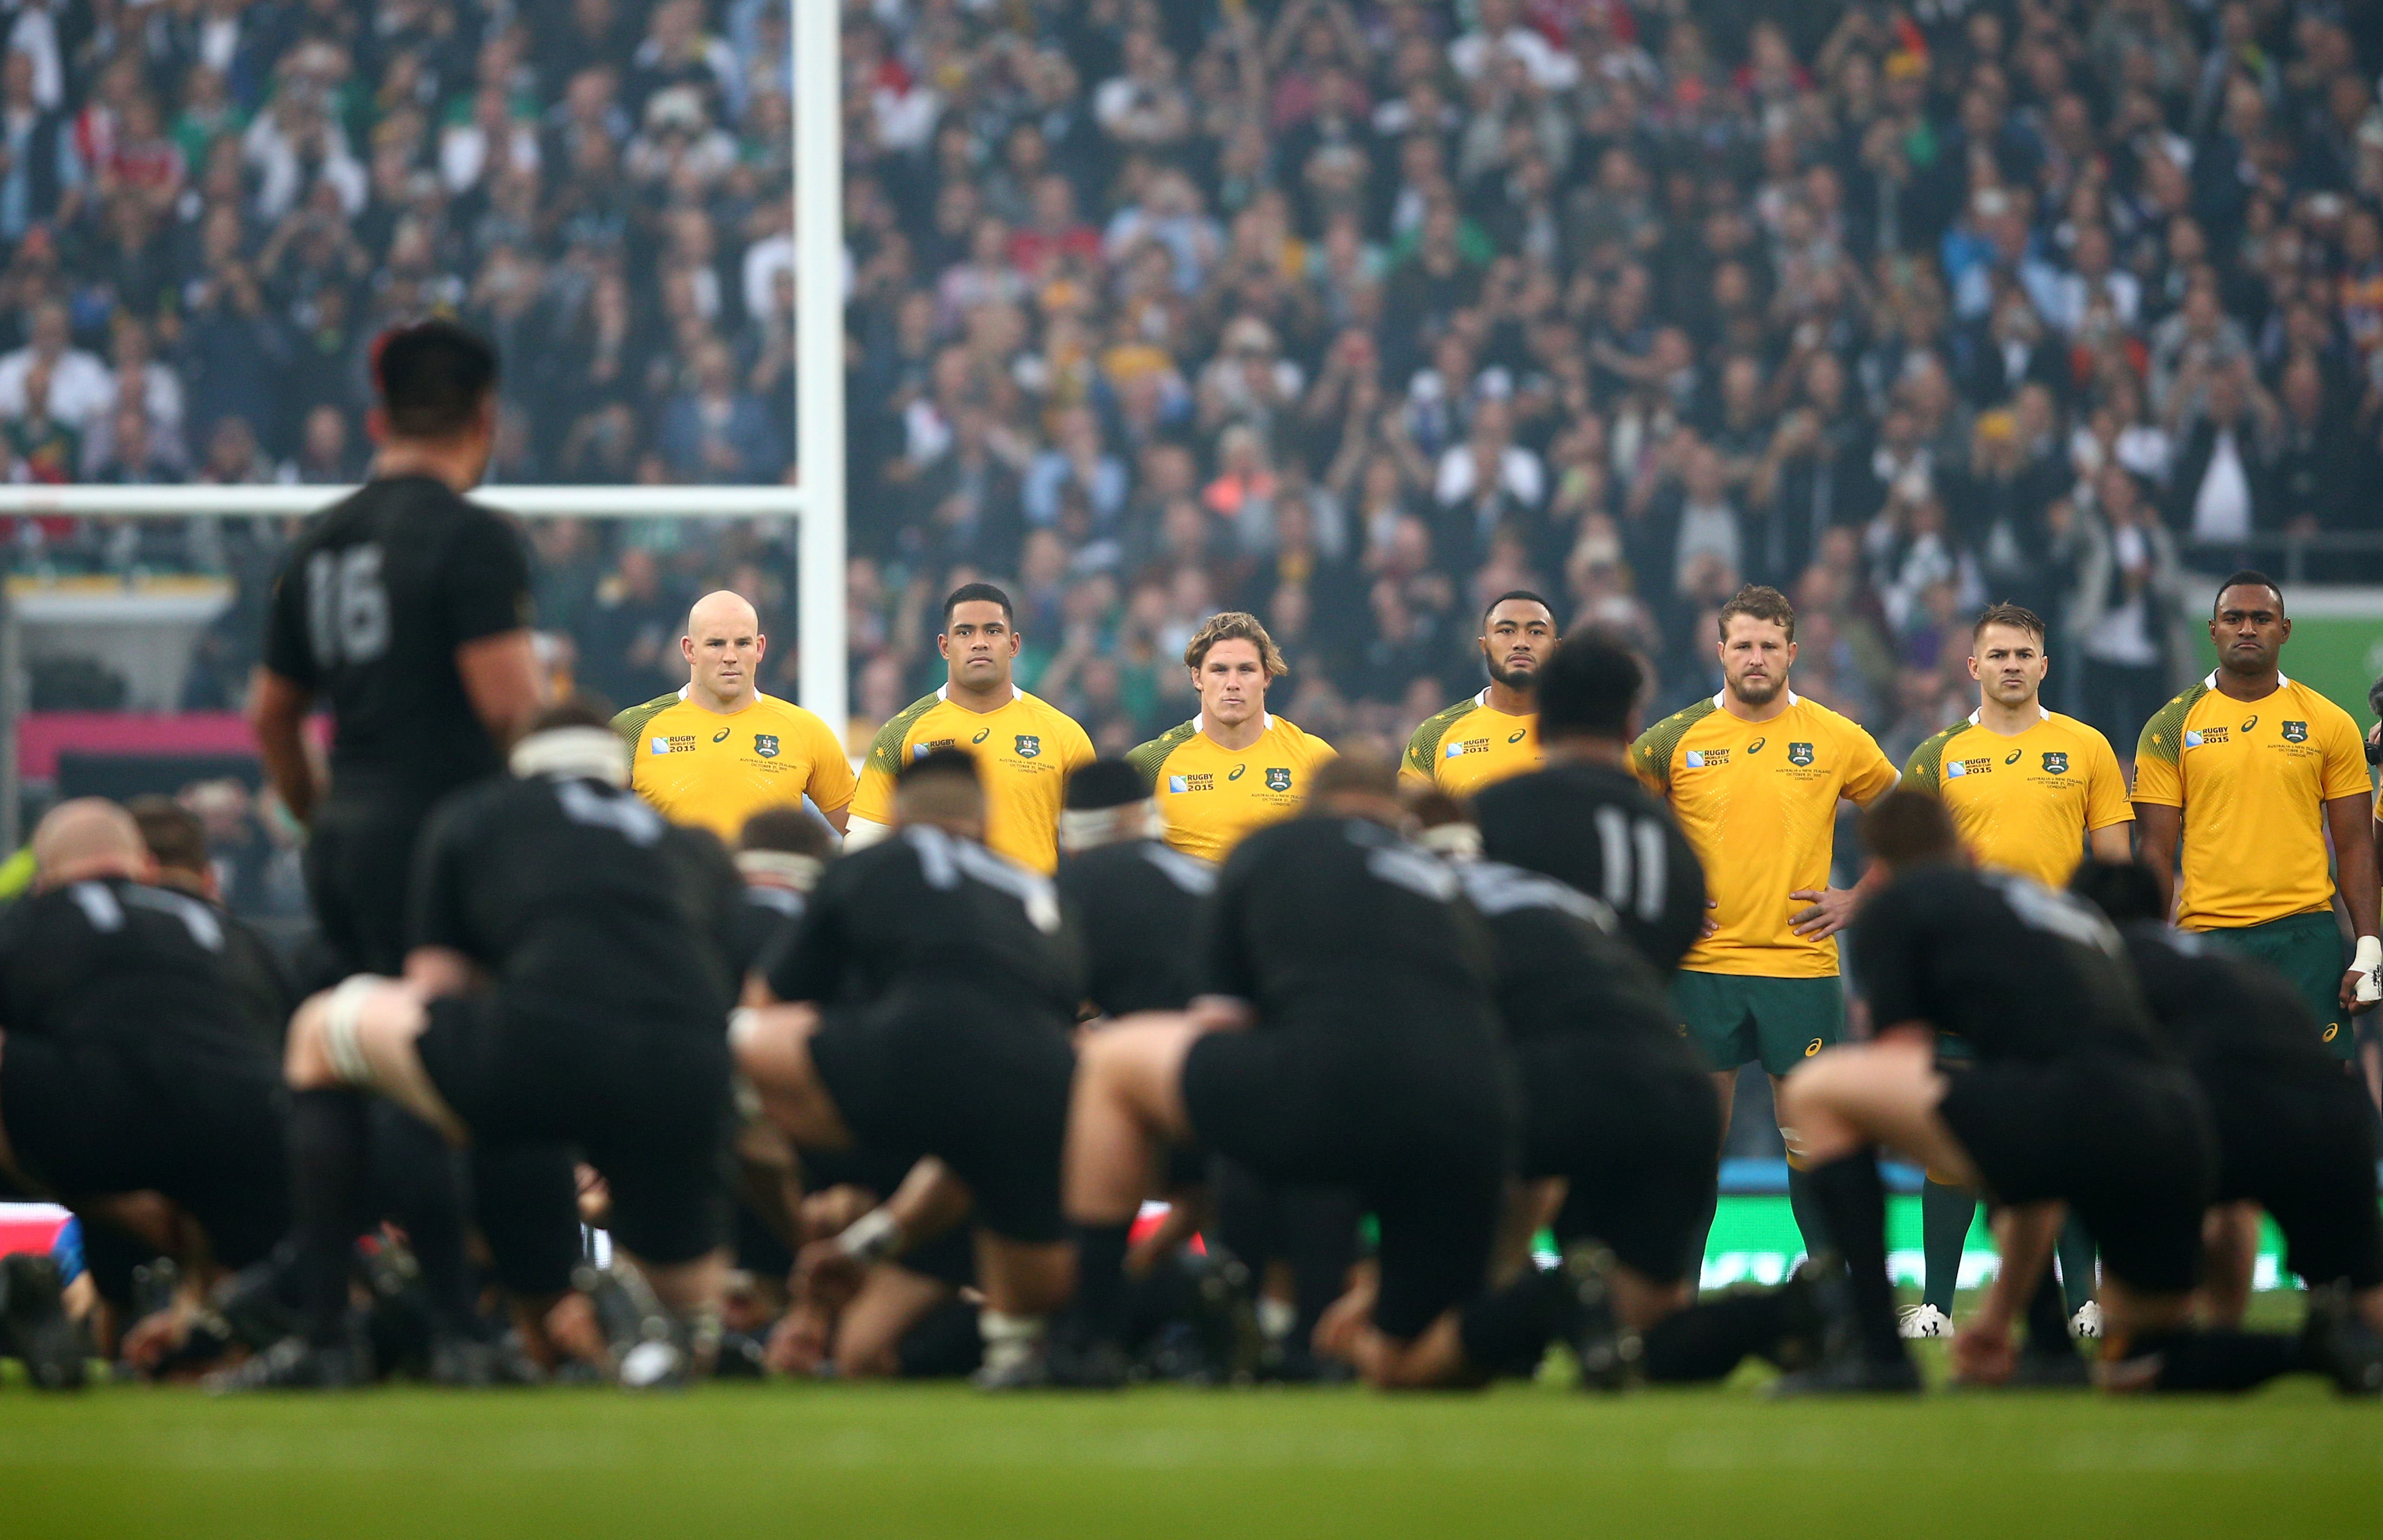 All Blacks Wallabies World Cup